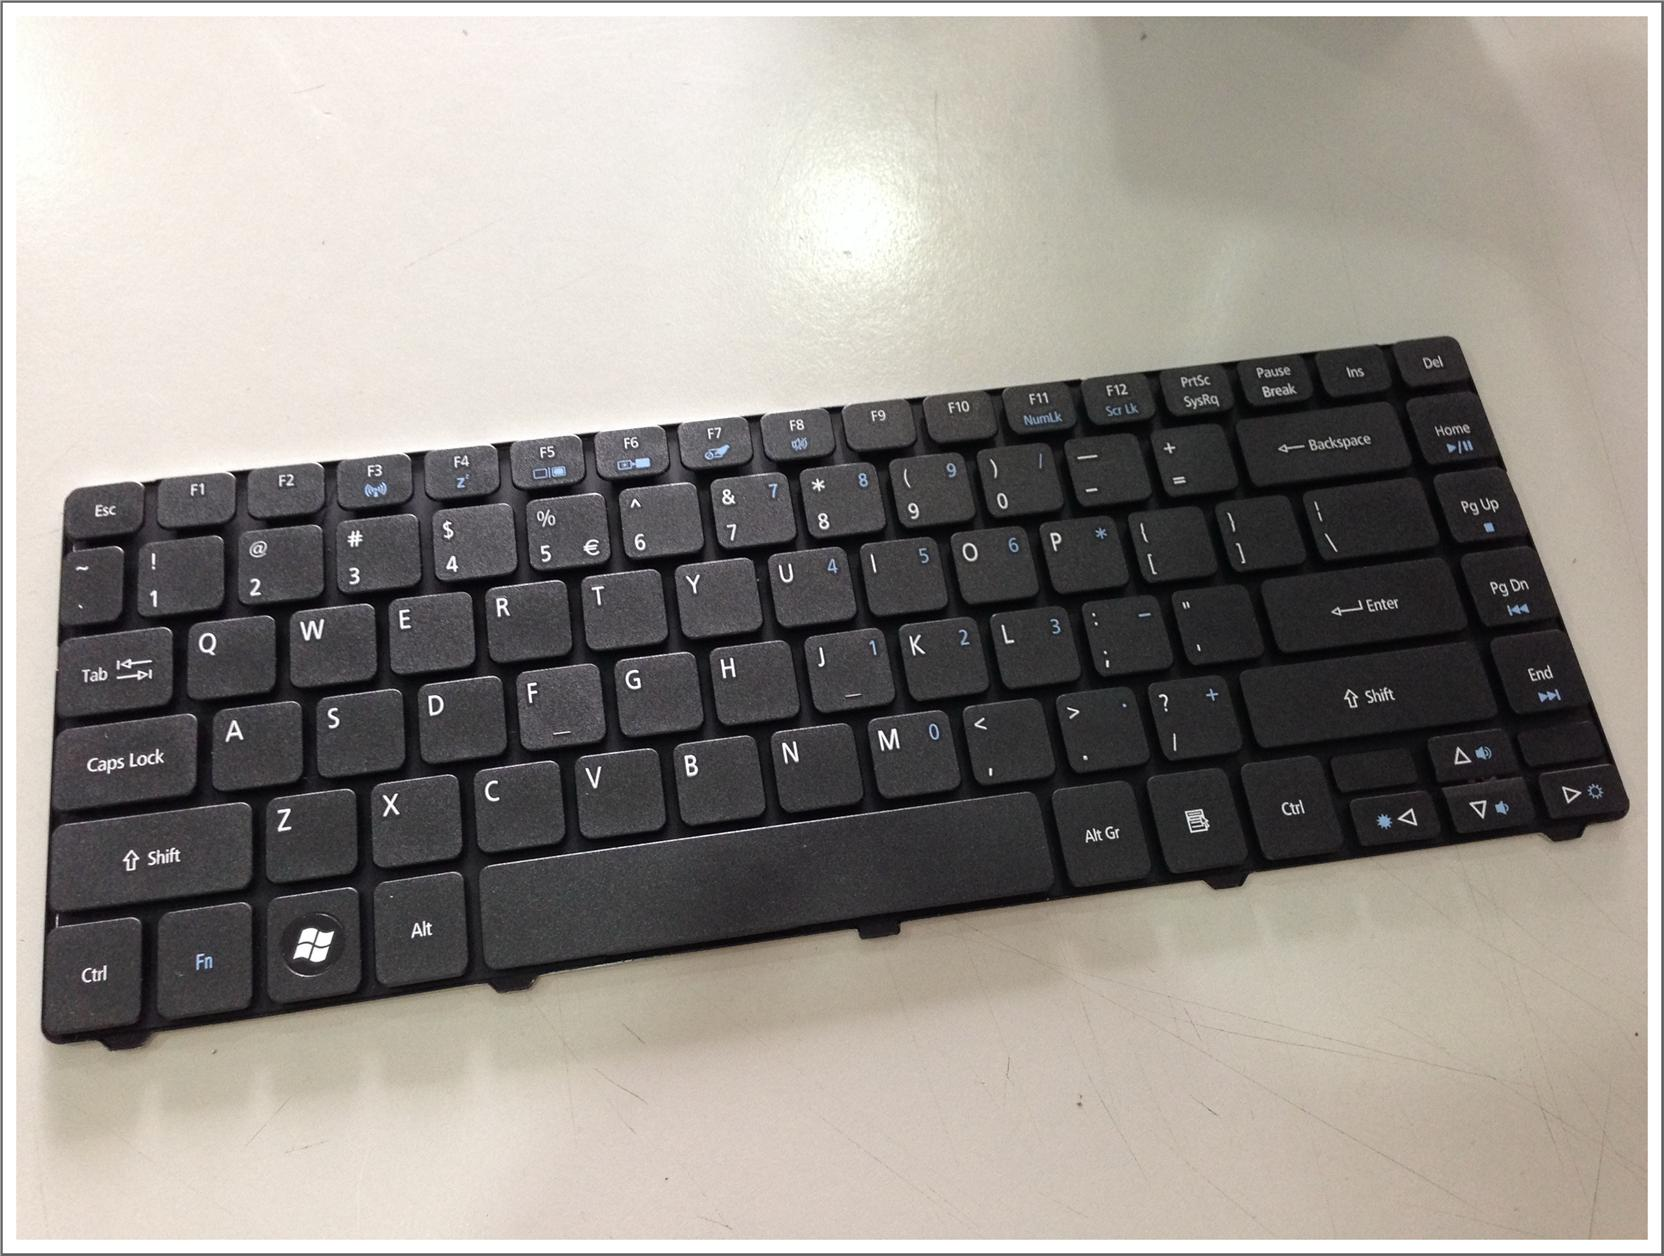 Acer Aspire 4736ZG 3810T 4741G 4552G 4750G 4743 Series Keyboard